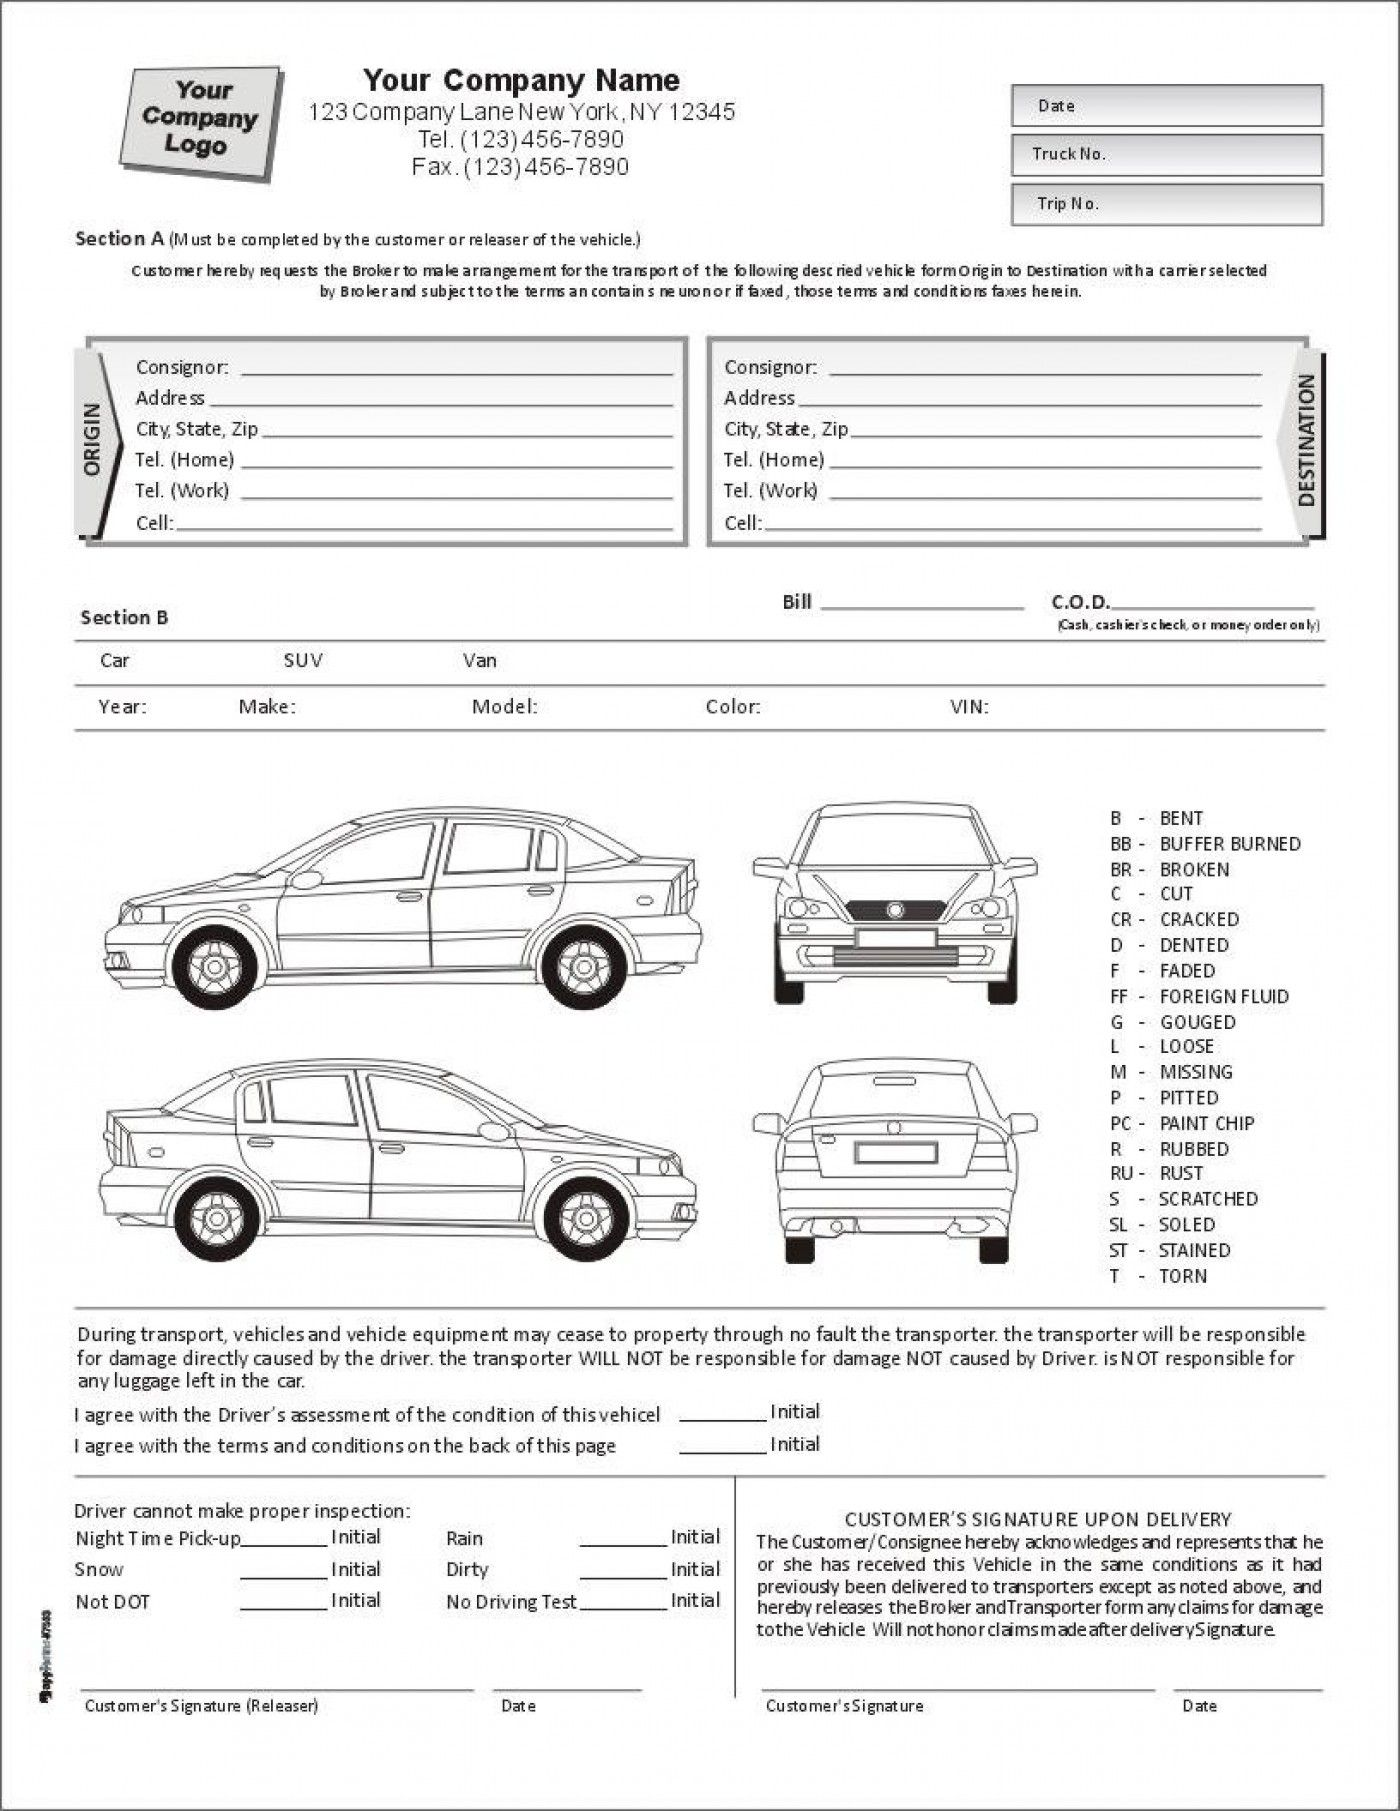 E8fc7 Vehicle Damage Report Template In With Images